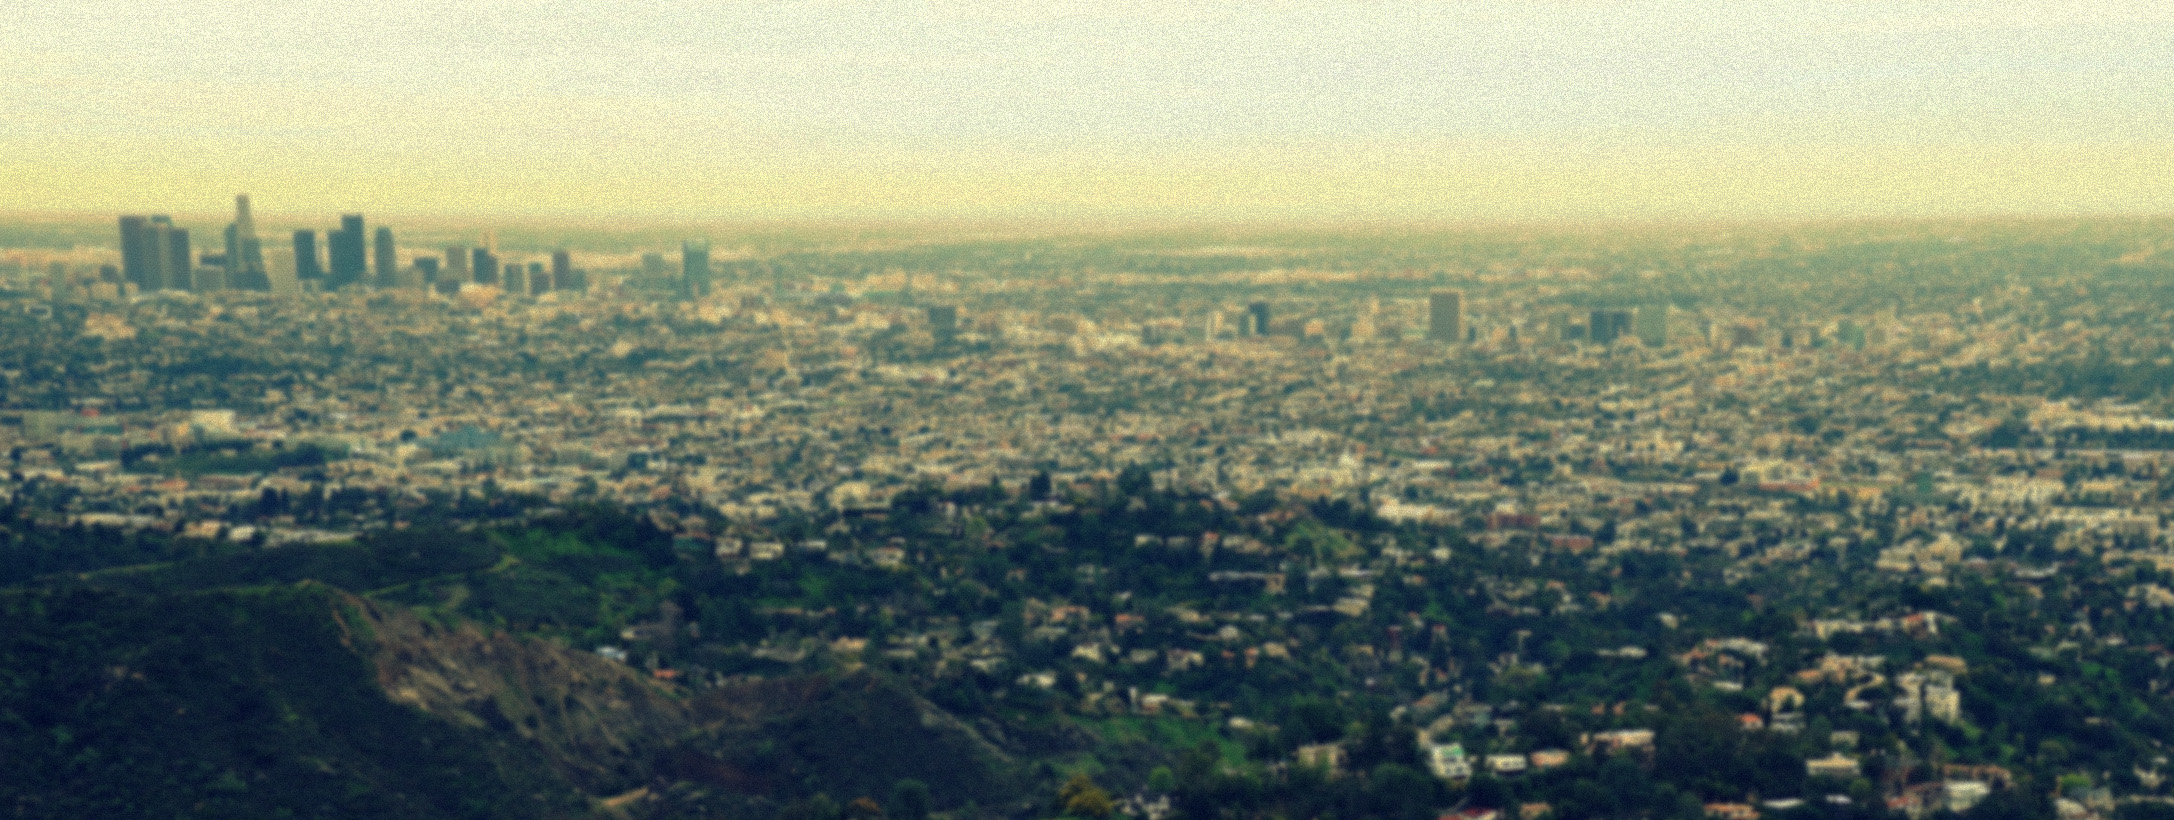 Photograph of a dirty Los Angeles taken from the Hollywood Hills